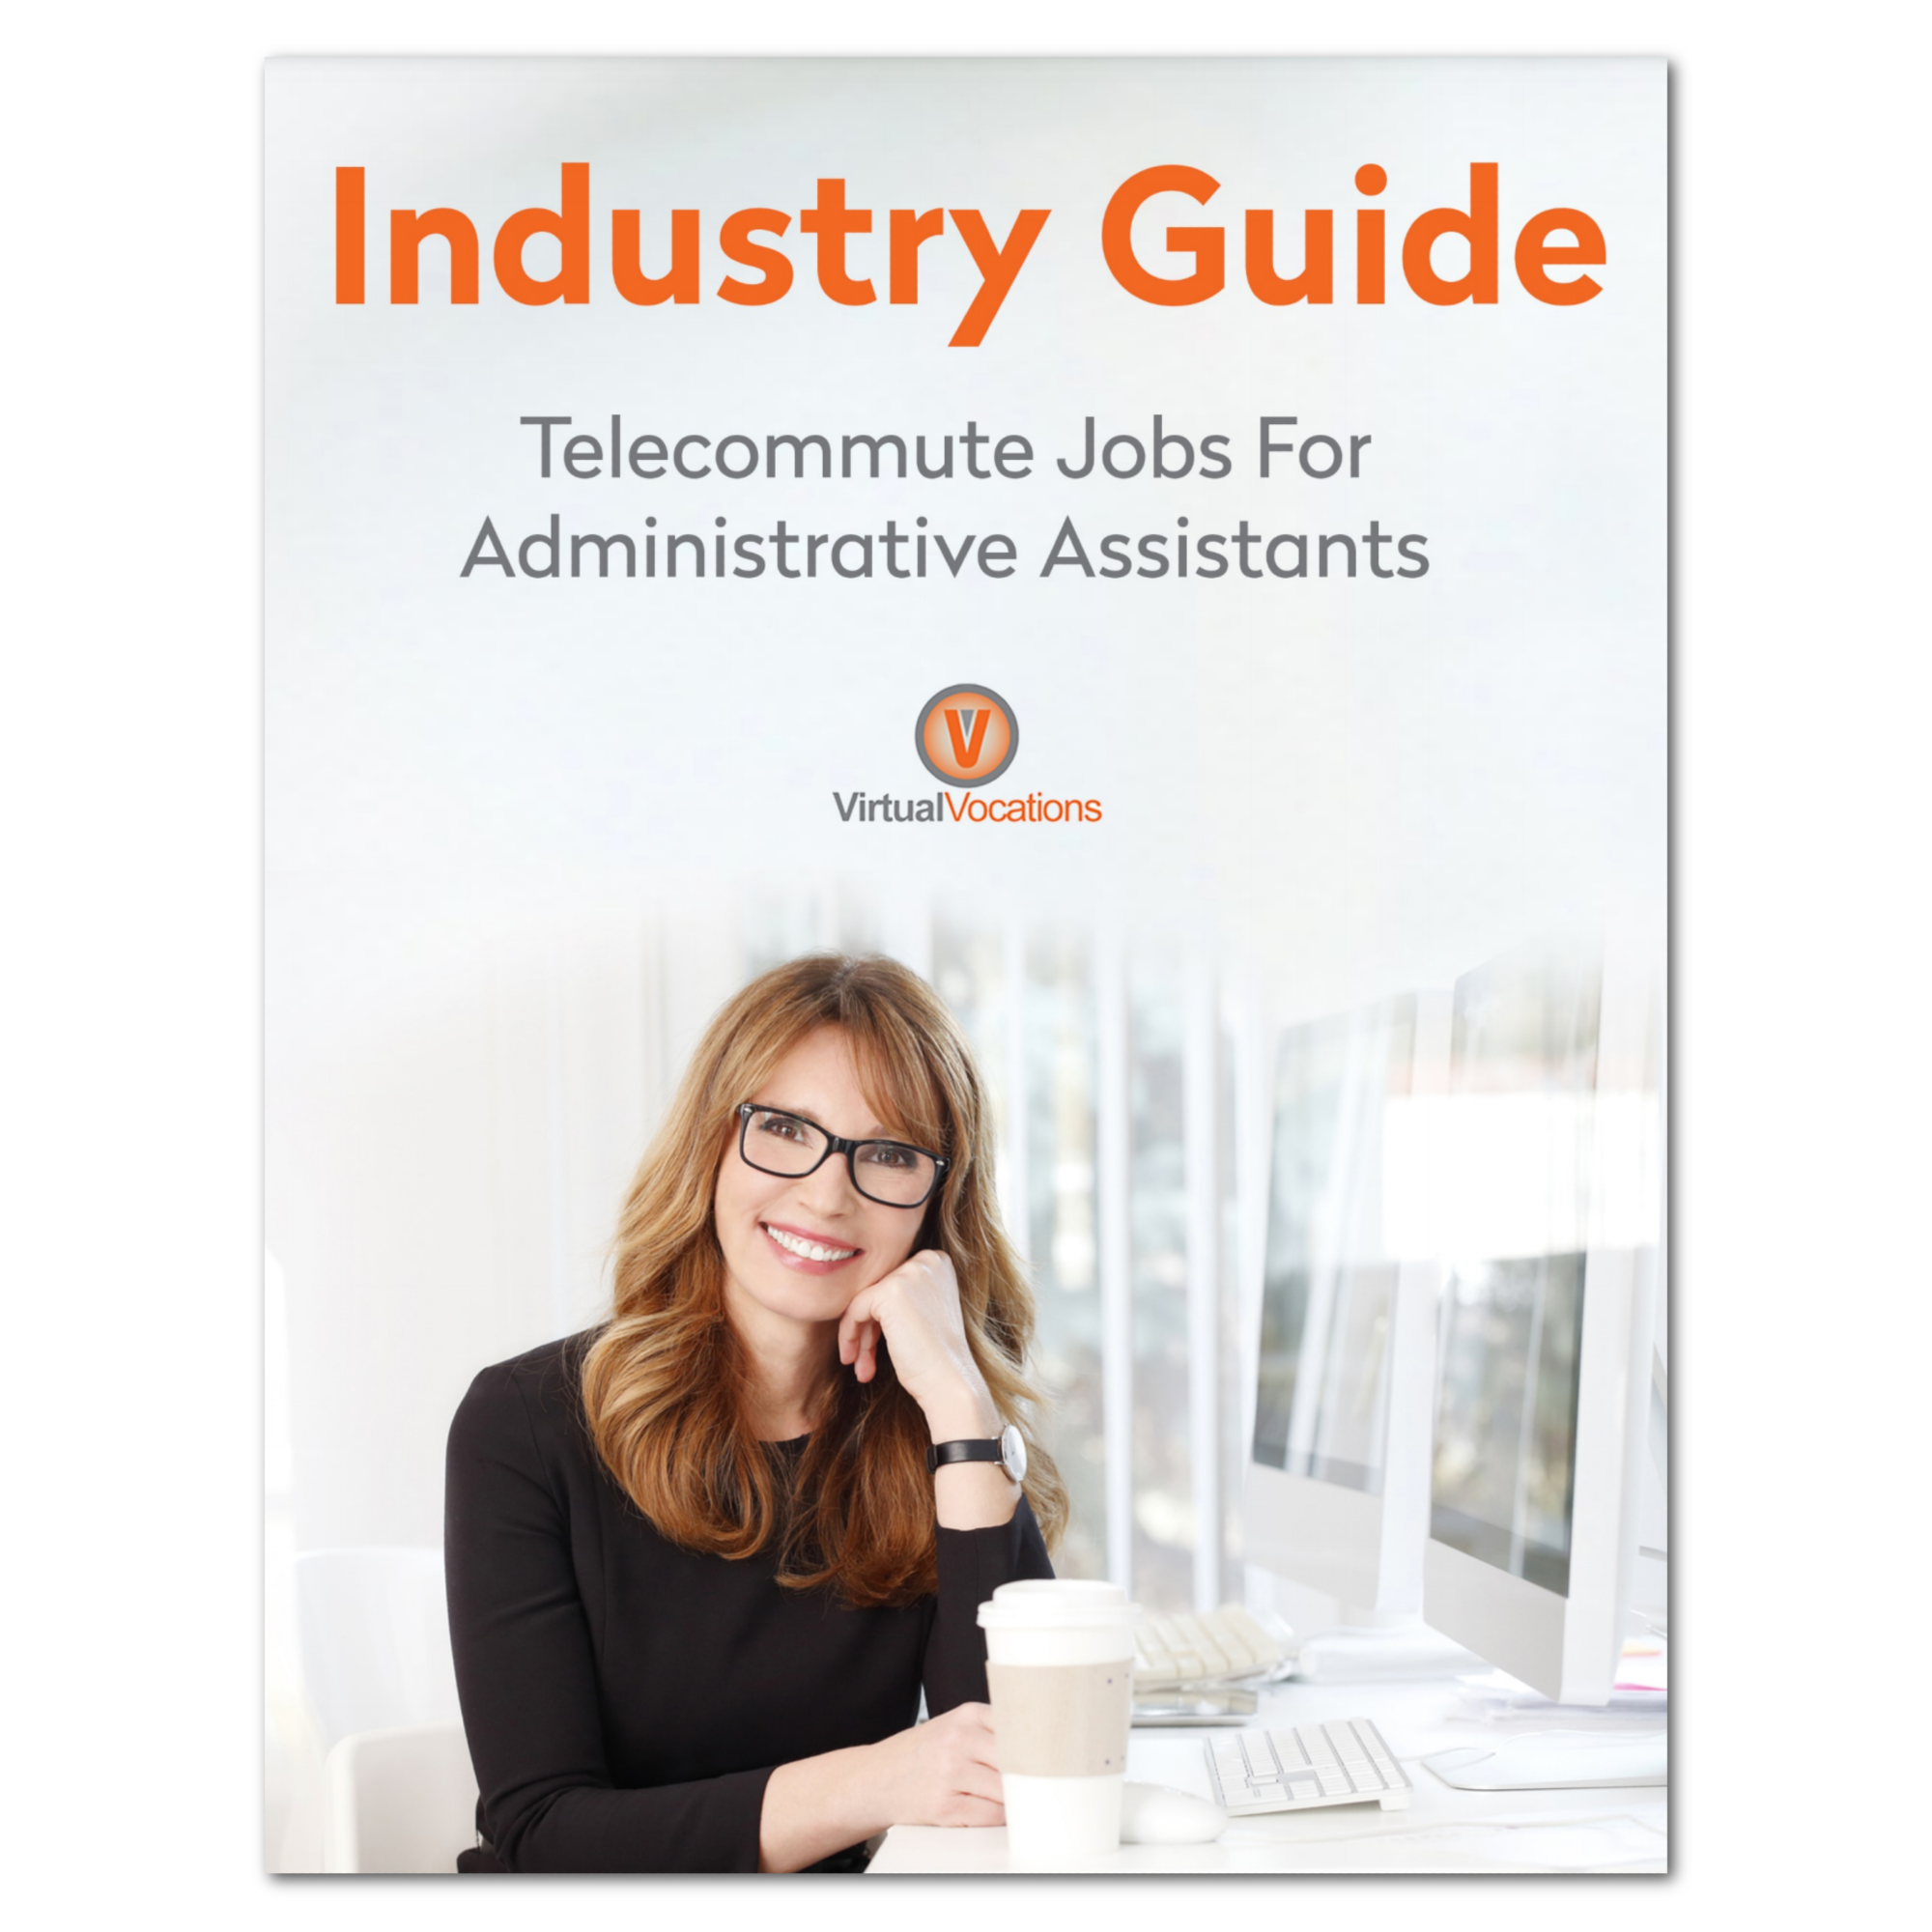 Industry Guide for Administrative Assistants